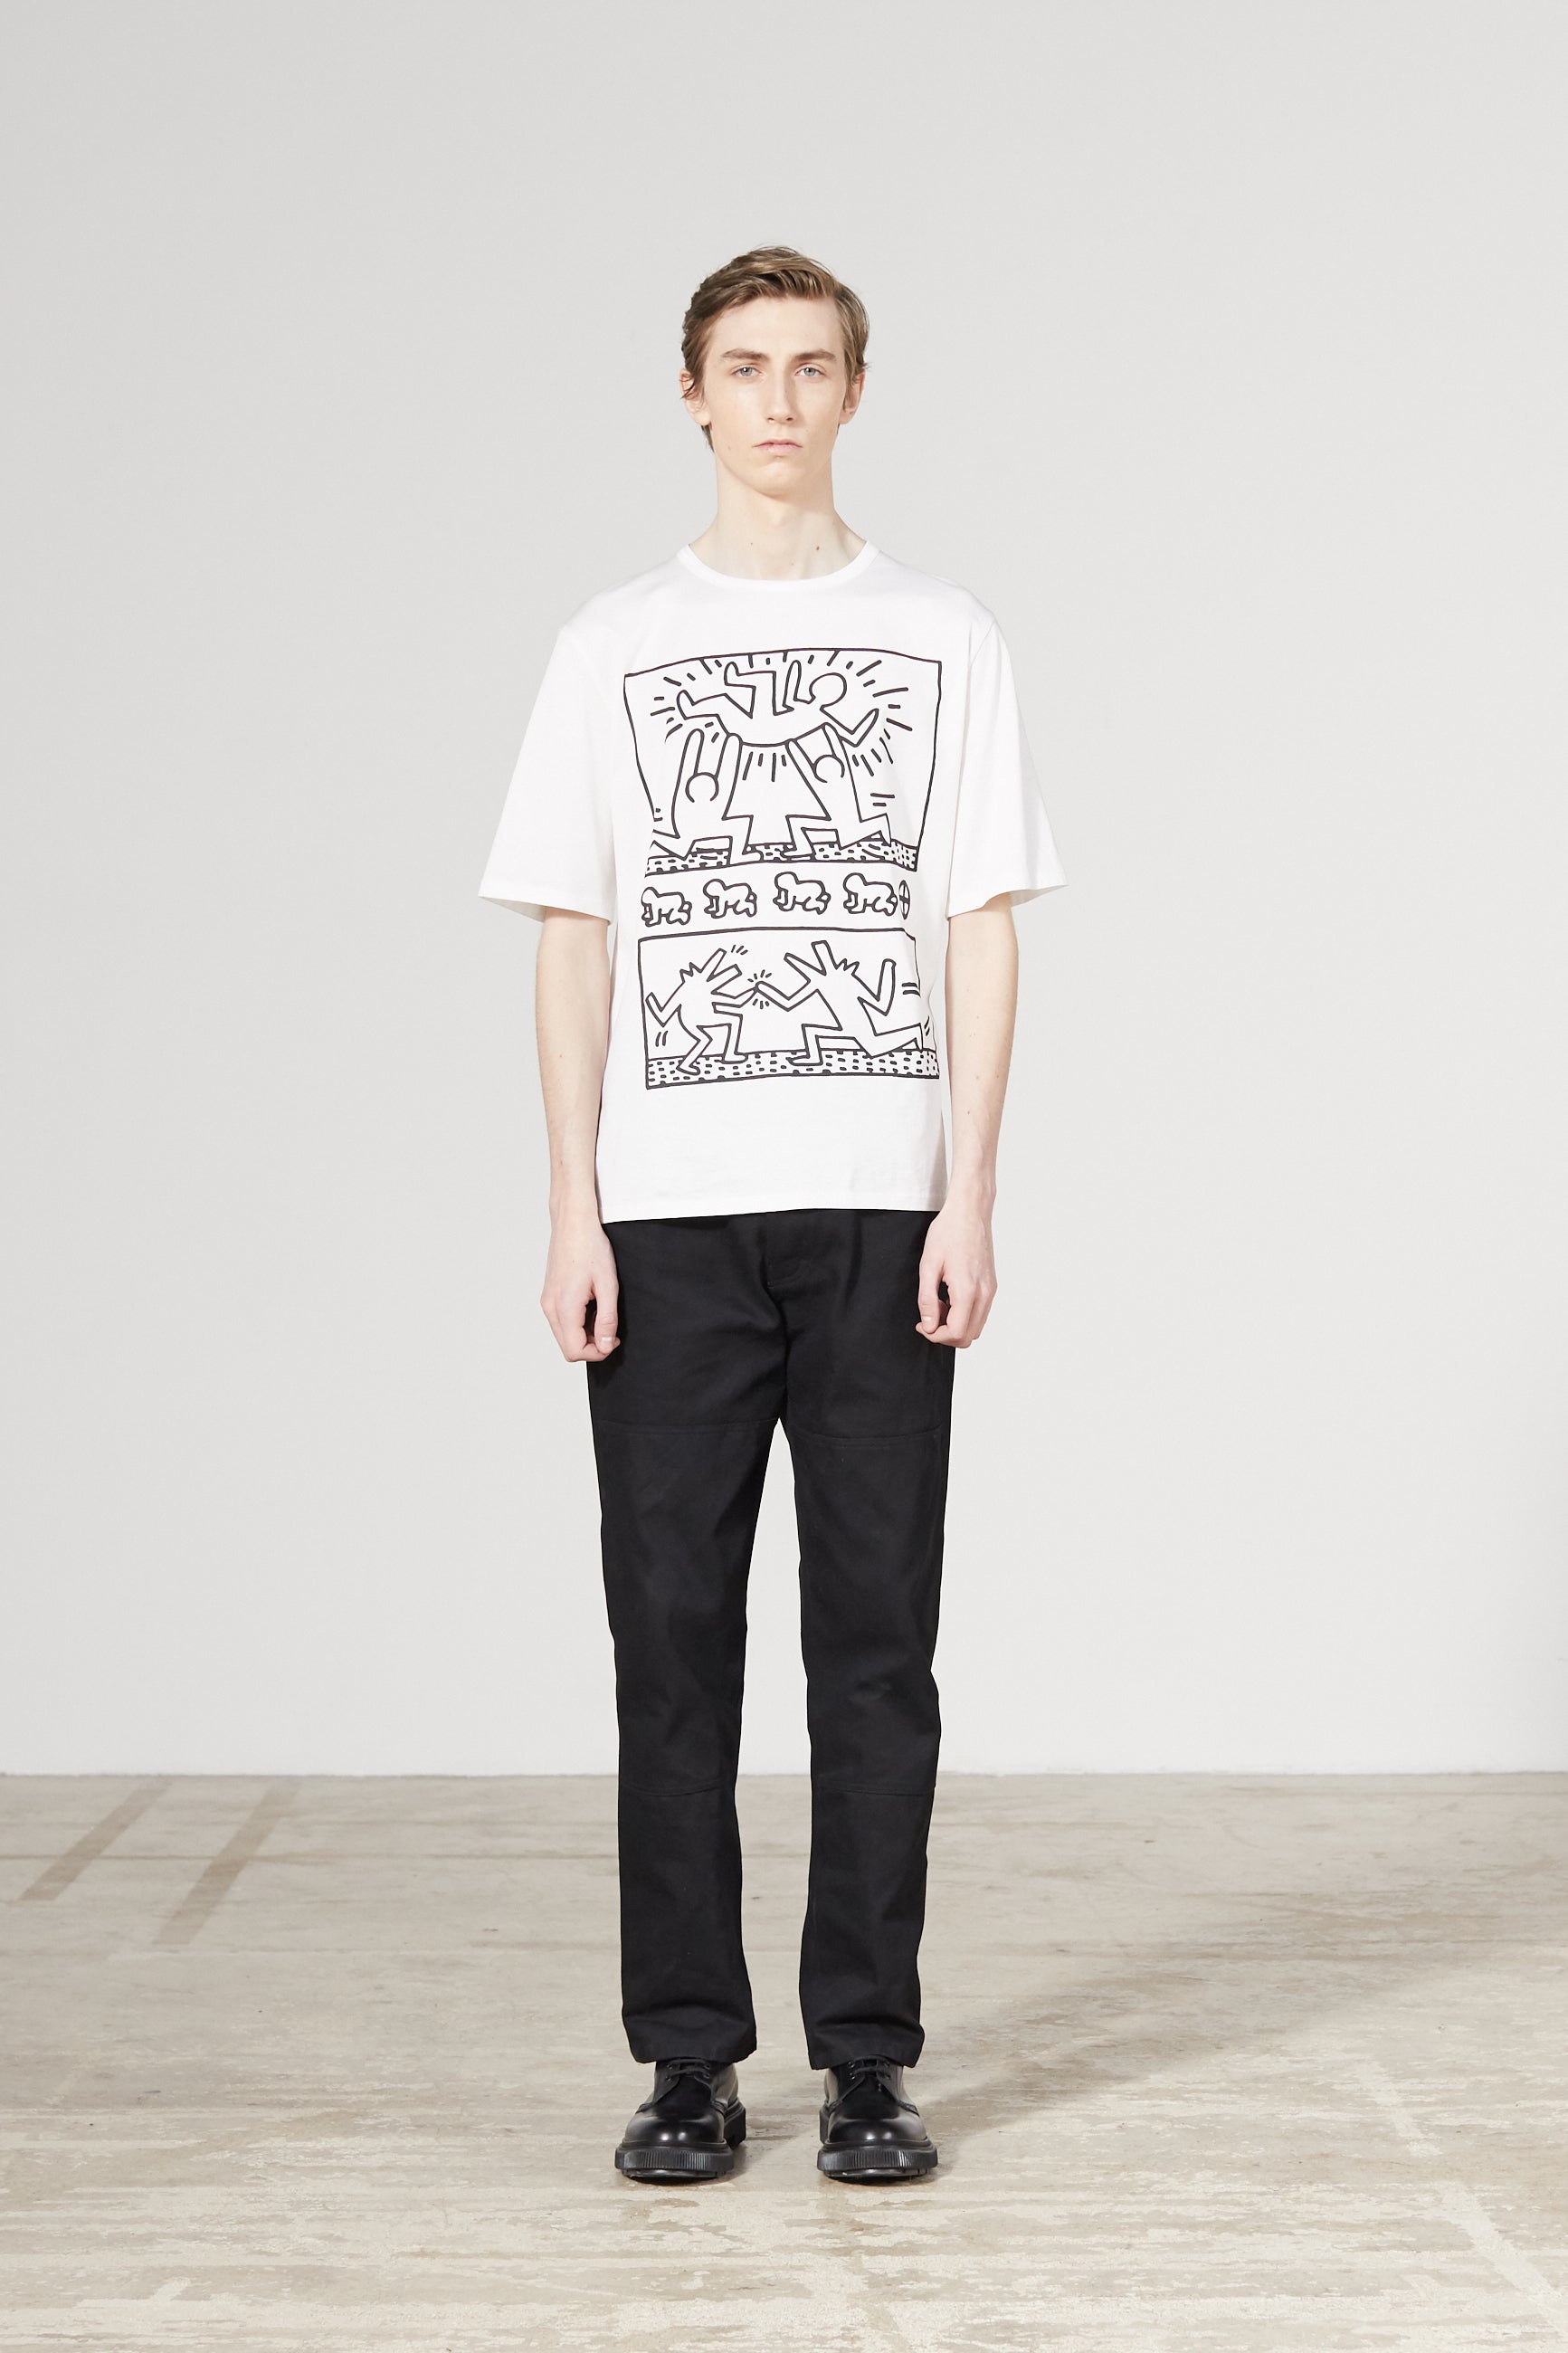 UNITY KEITH HARING WHITE T-SHIRT